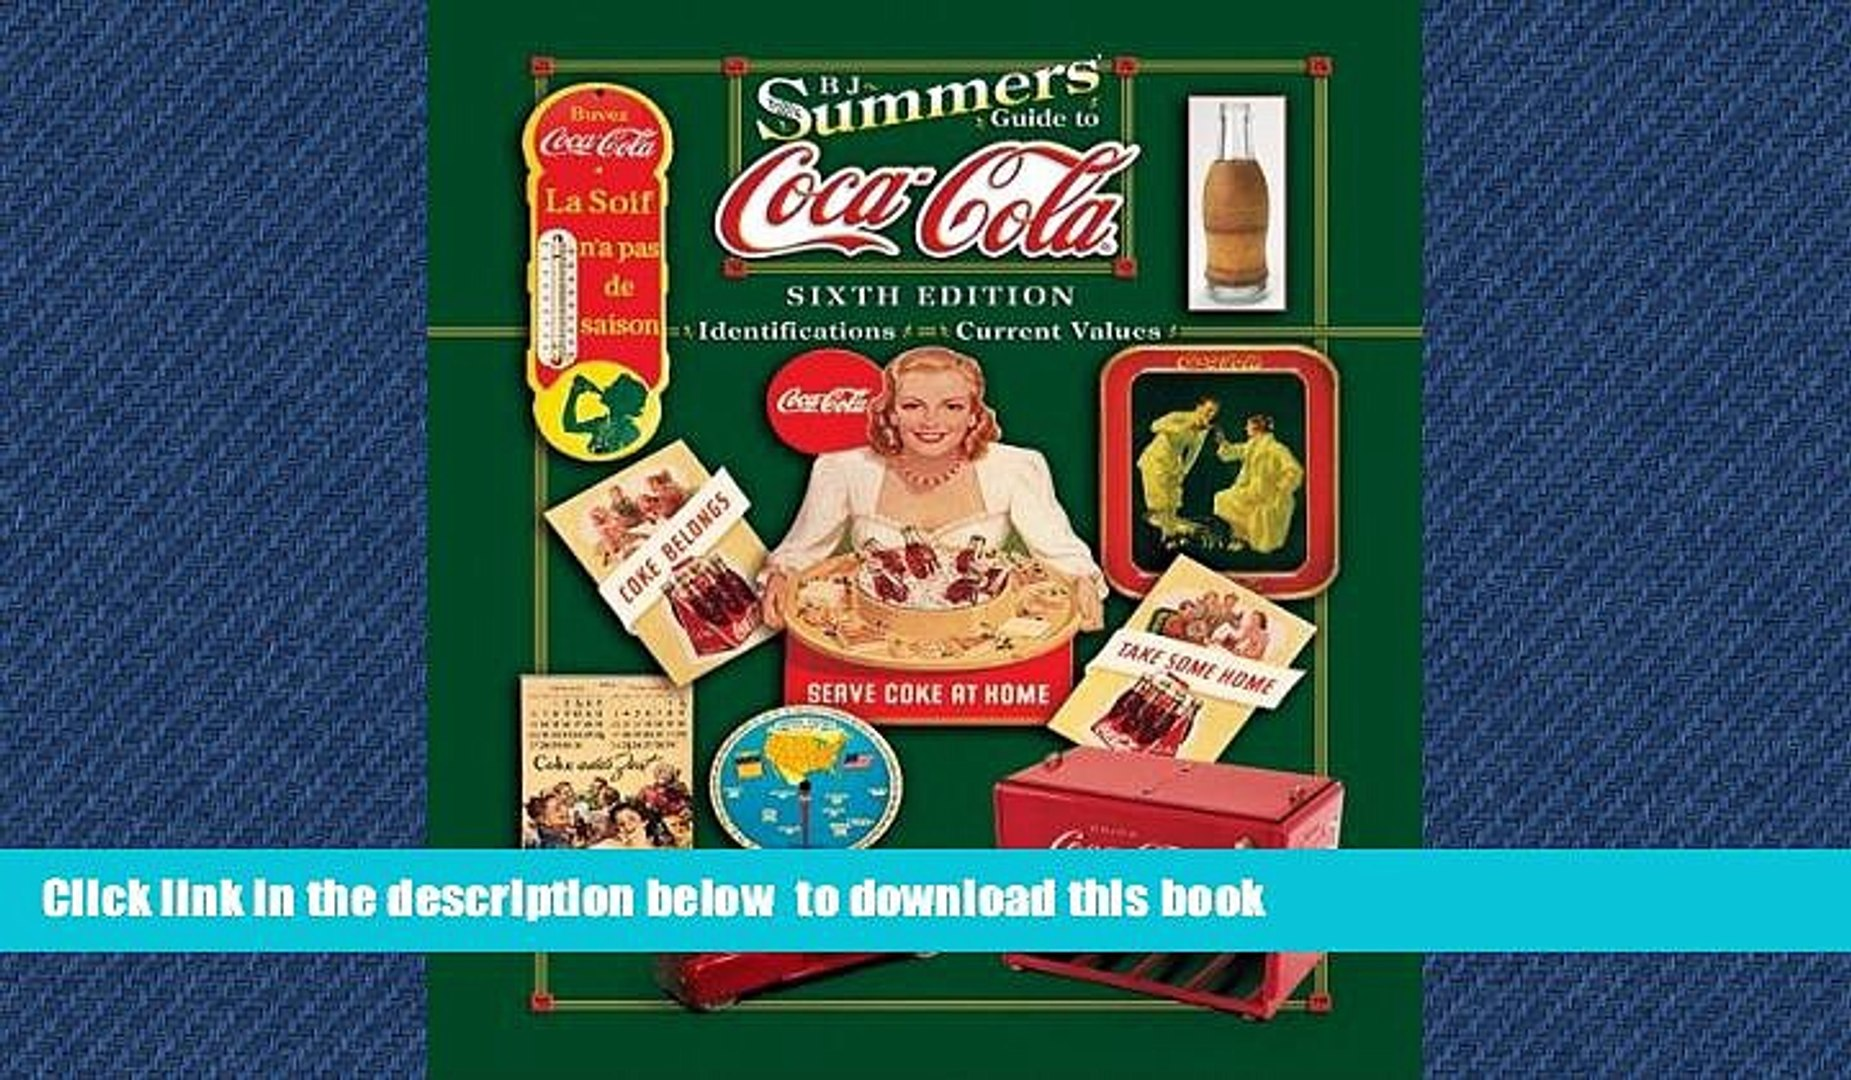 Buy NOW B J Summers B J Summer s Guide to Coca-Cola (B. J. Summers  Guide to Coca-Cola: